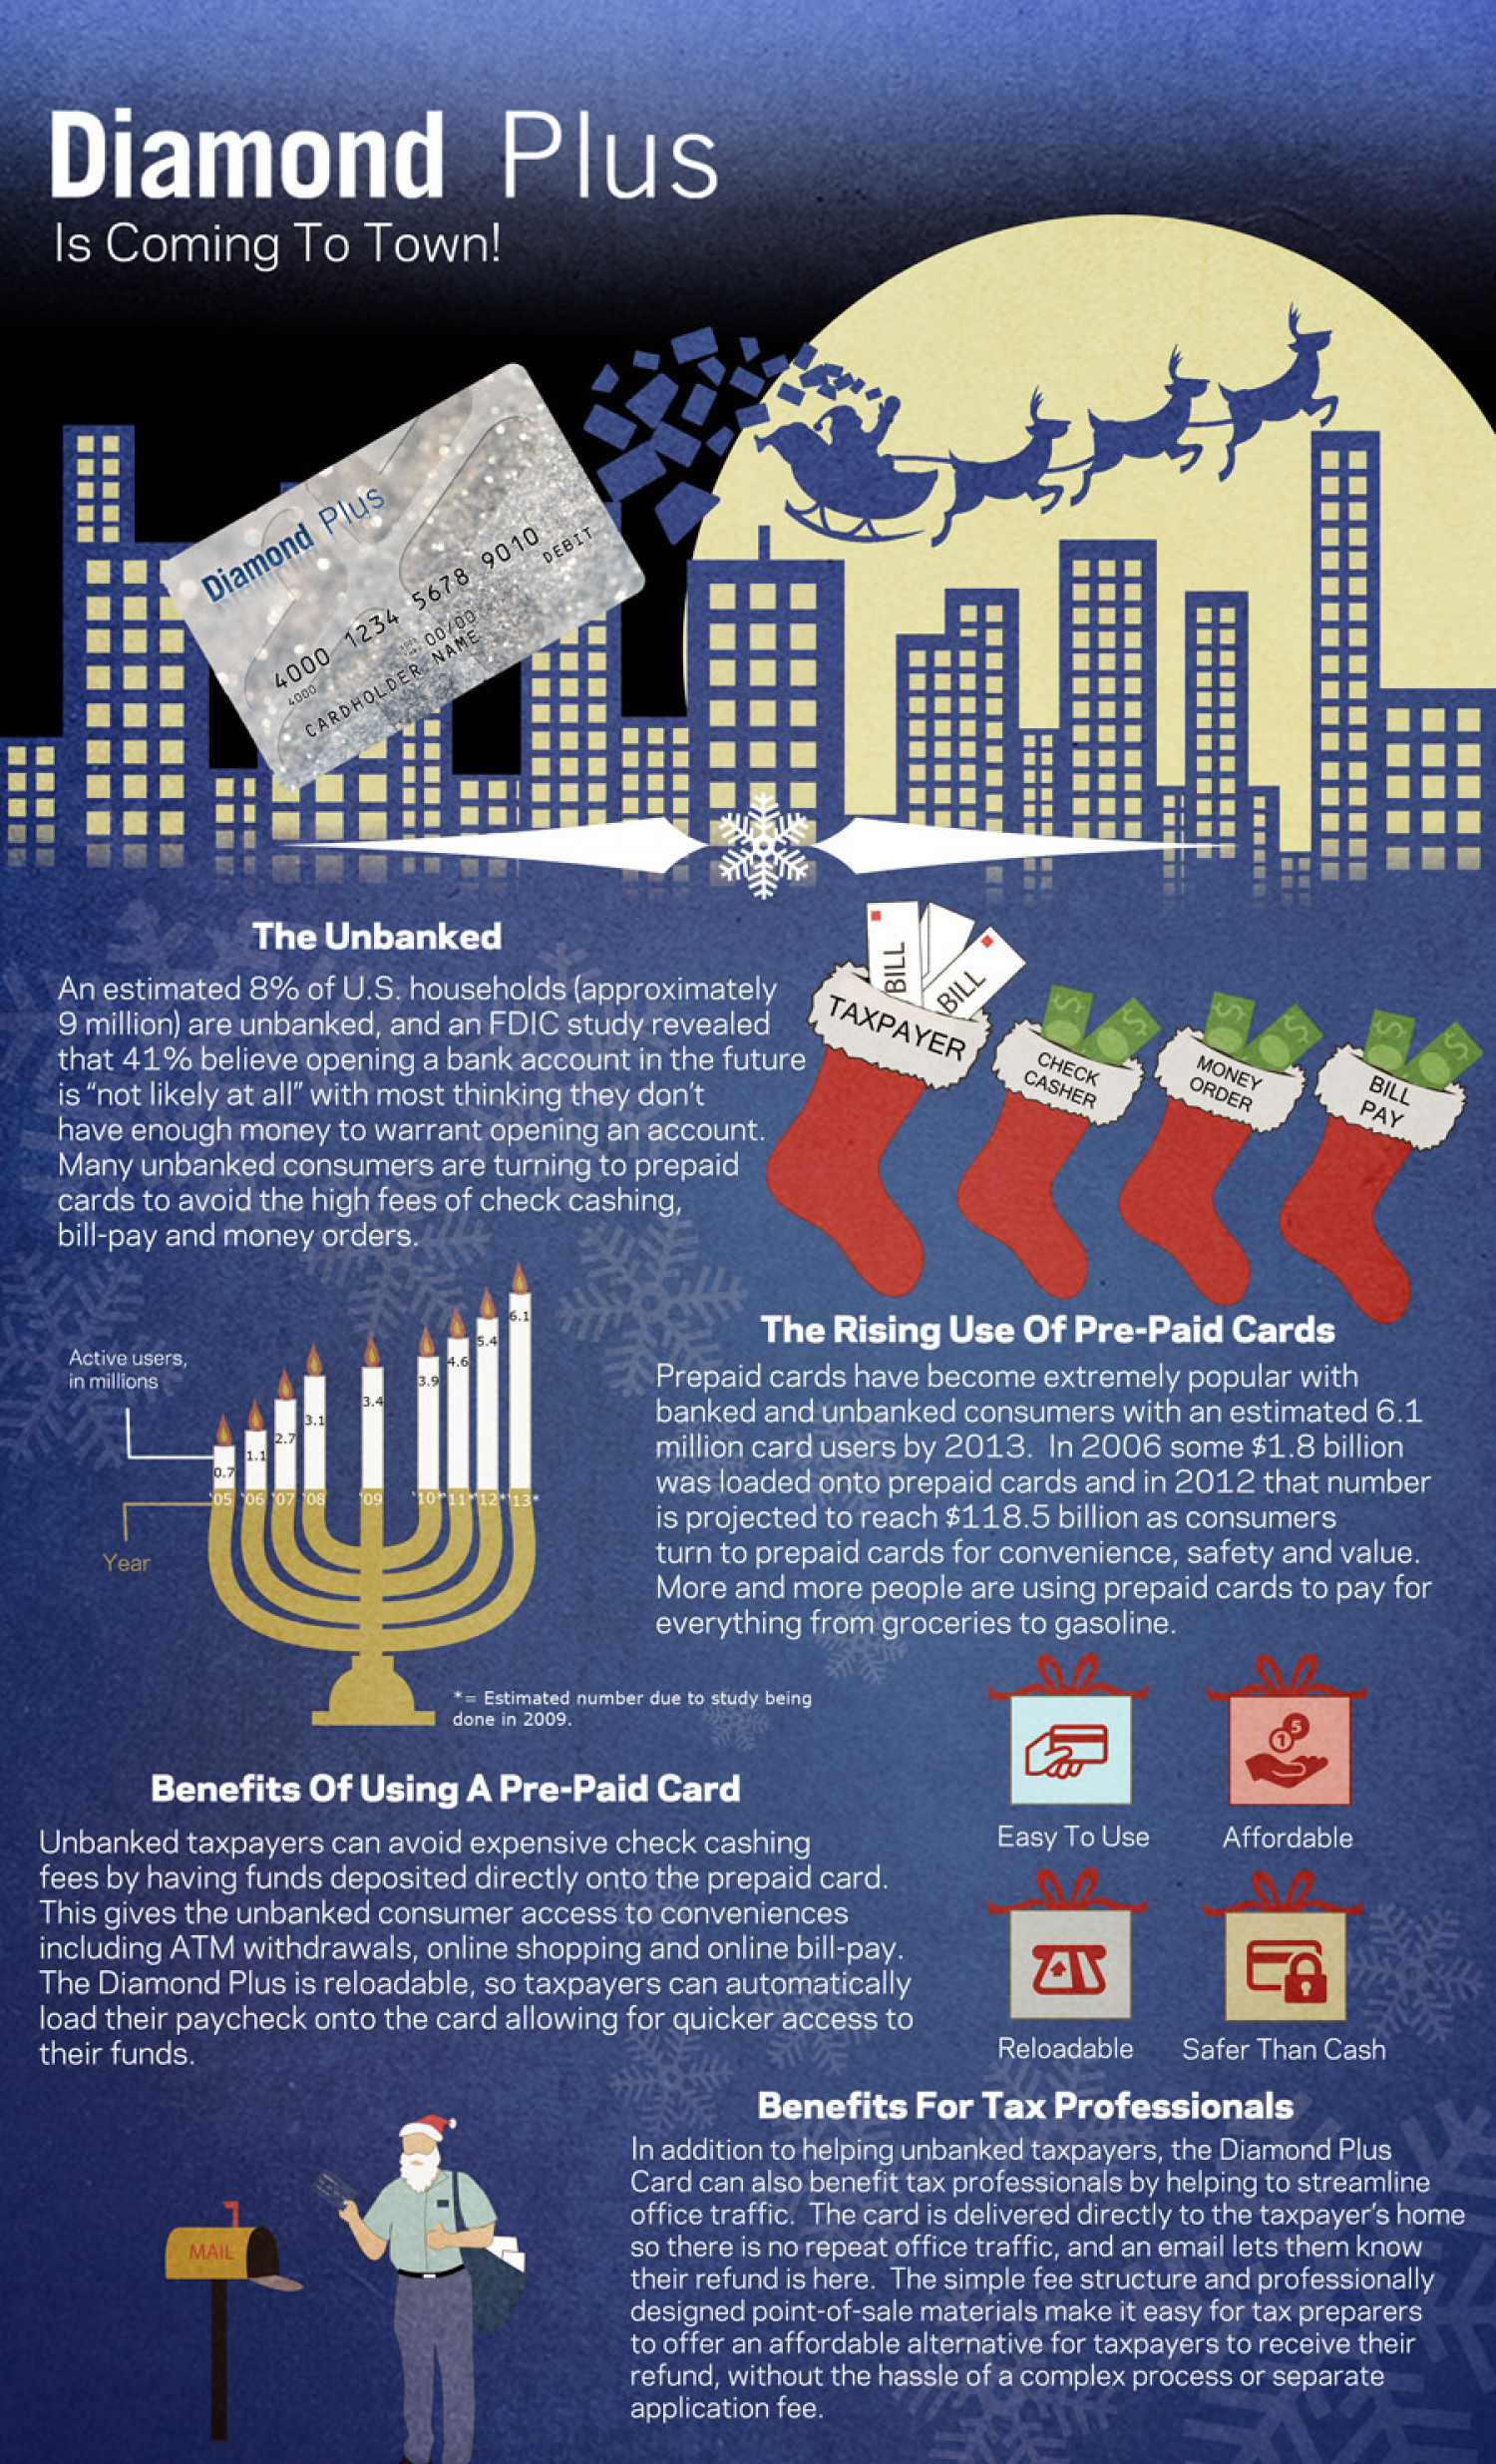 Diamond Plus is Coming to Town Infographic